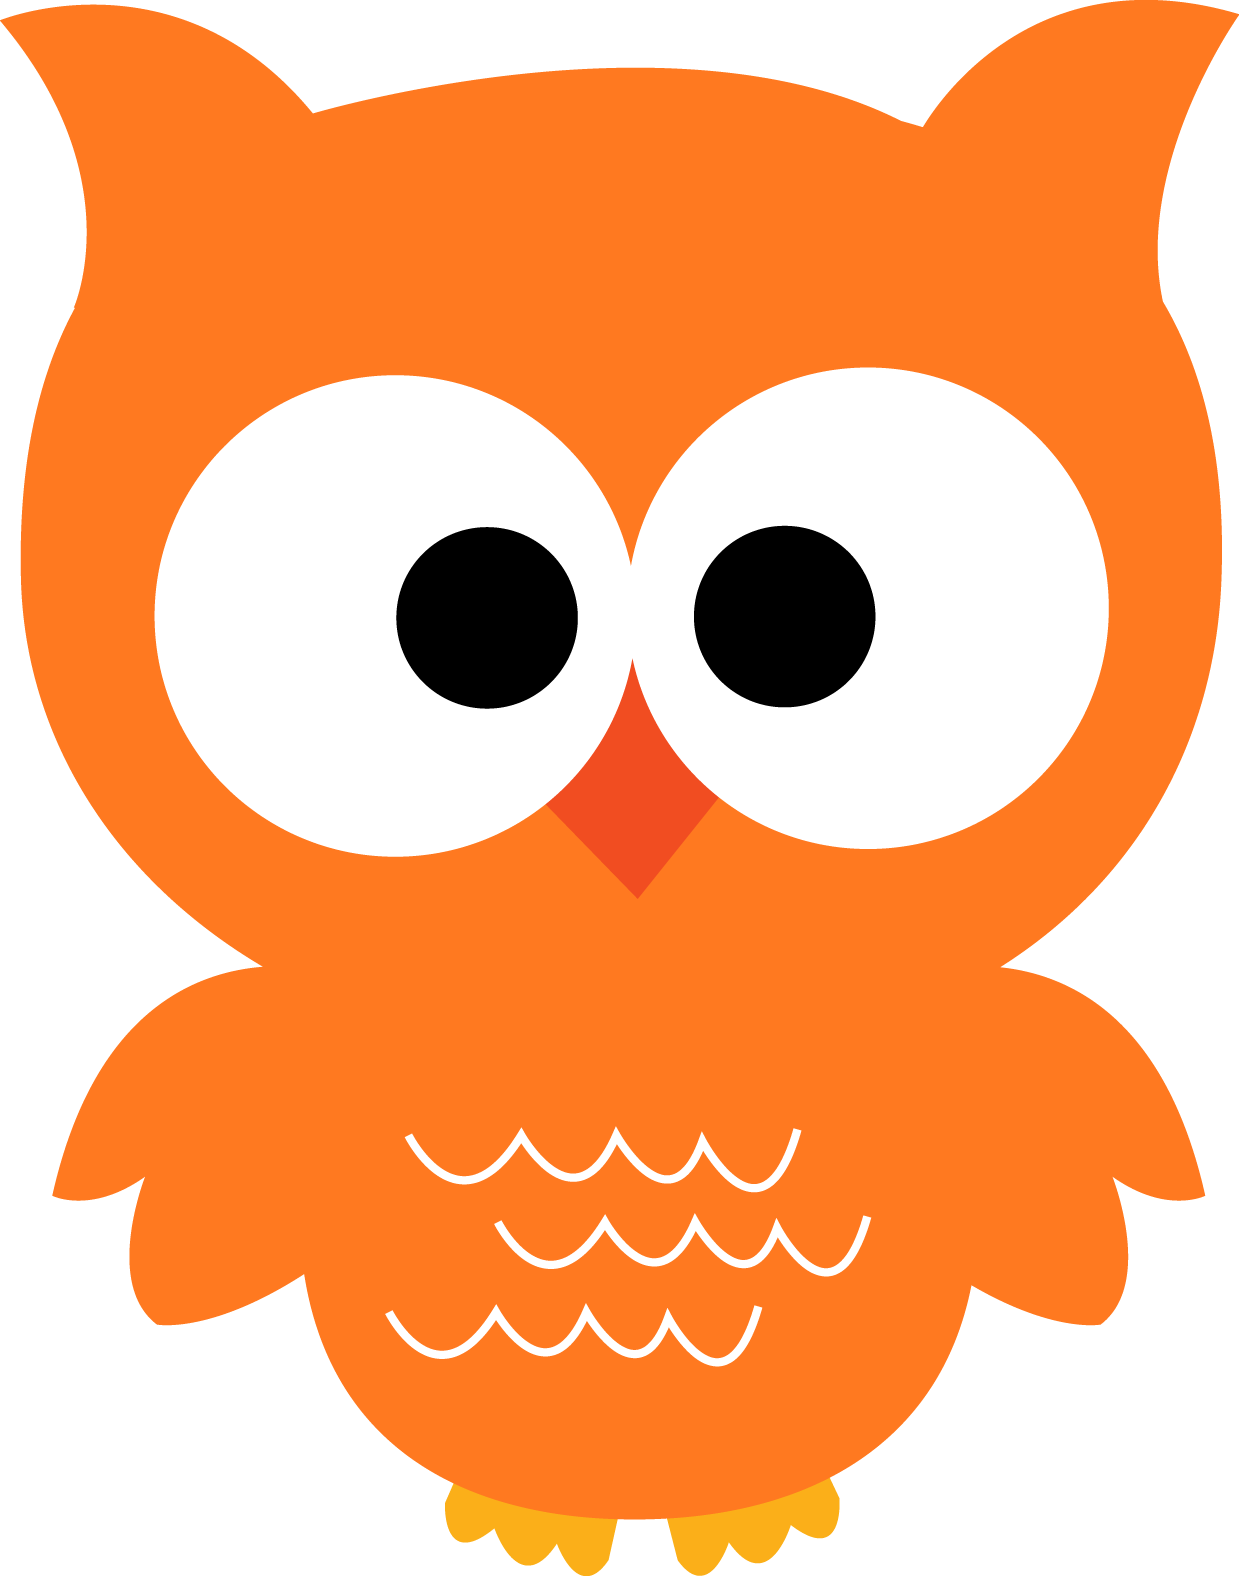 Owls clipart summer. Giggle and print adorable